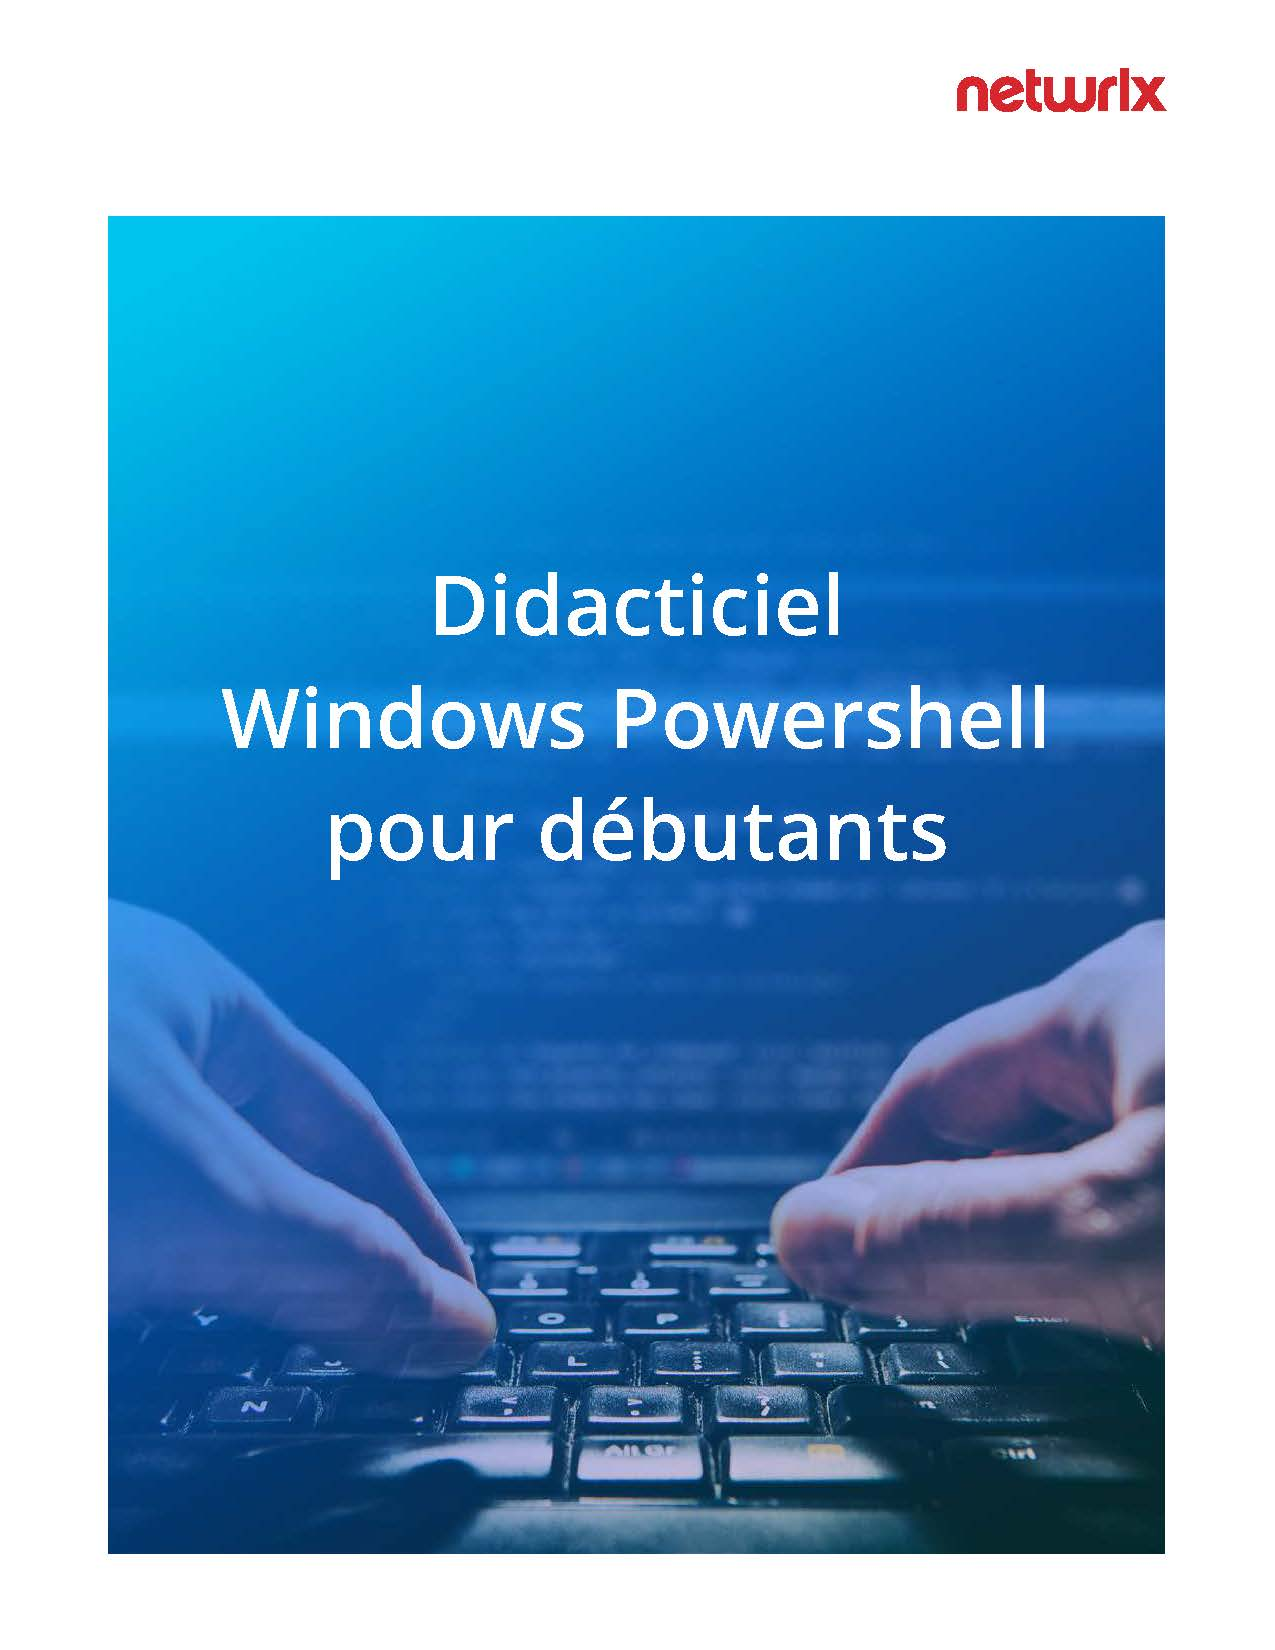 Didacticiel Windows Powershell pour débutants